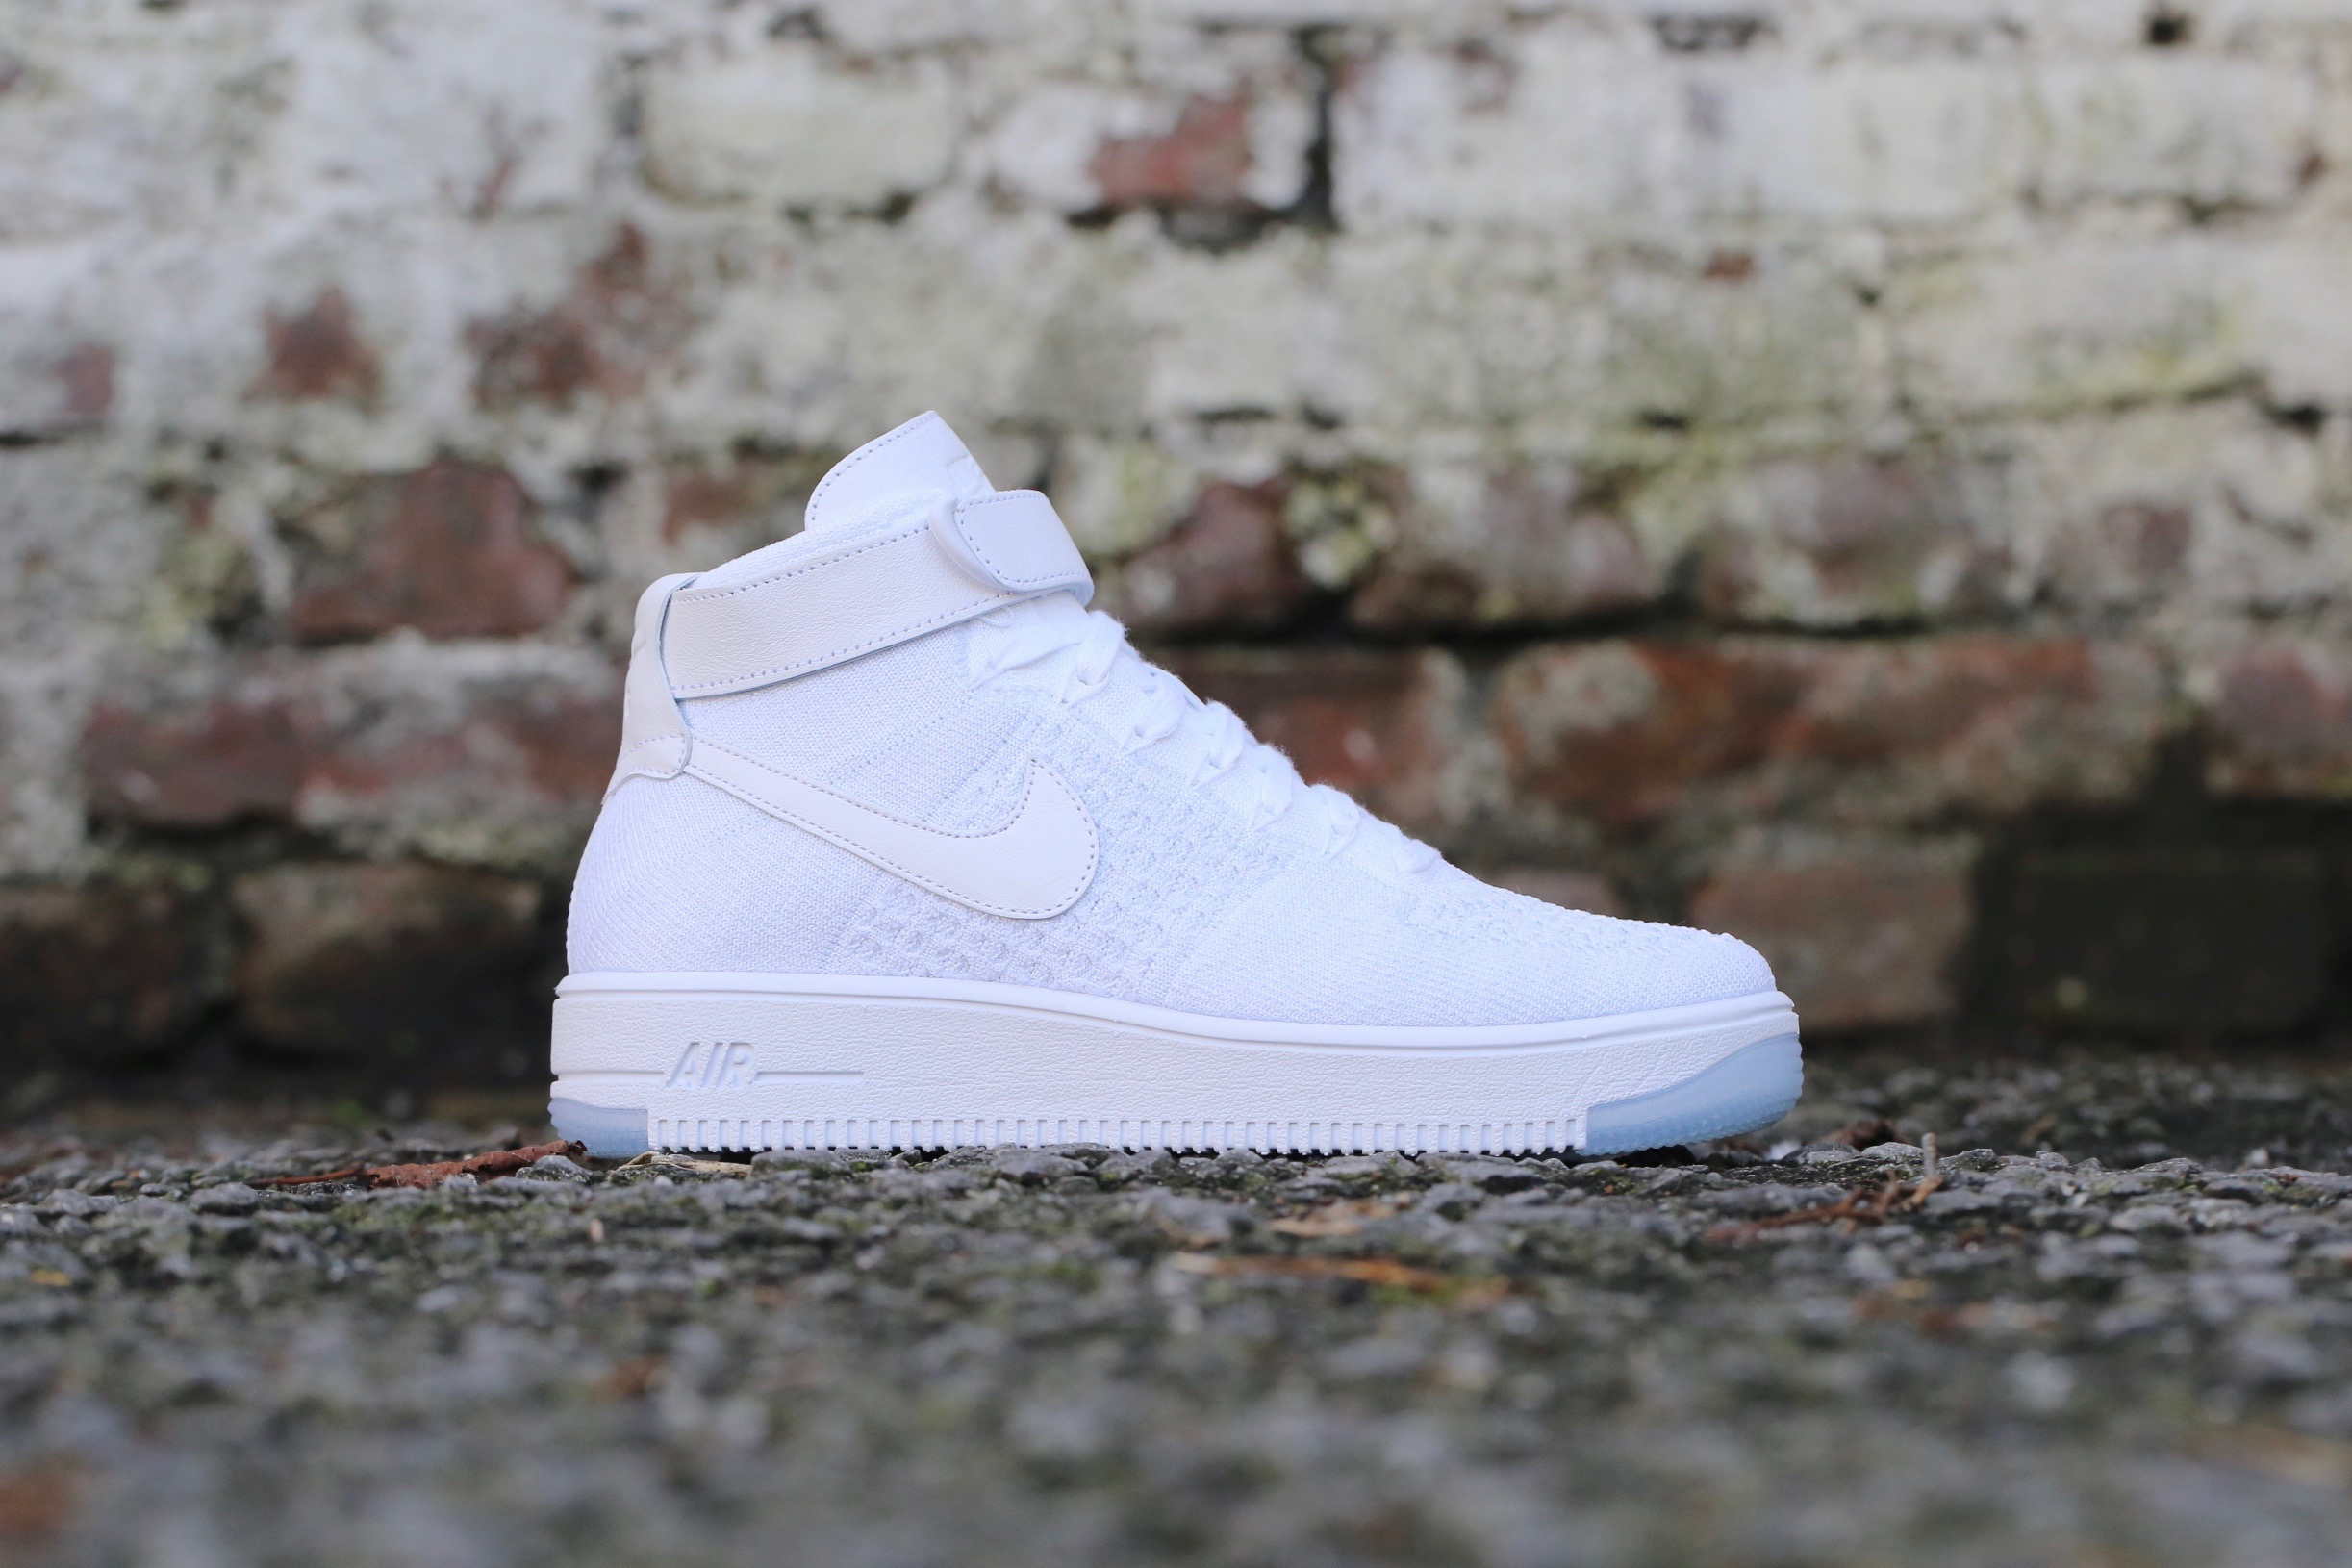 new arrivals 16407 7c606 Nike W Air Force 1 Flyknit - White / White / Pure Platinum